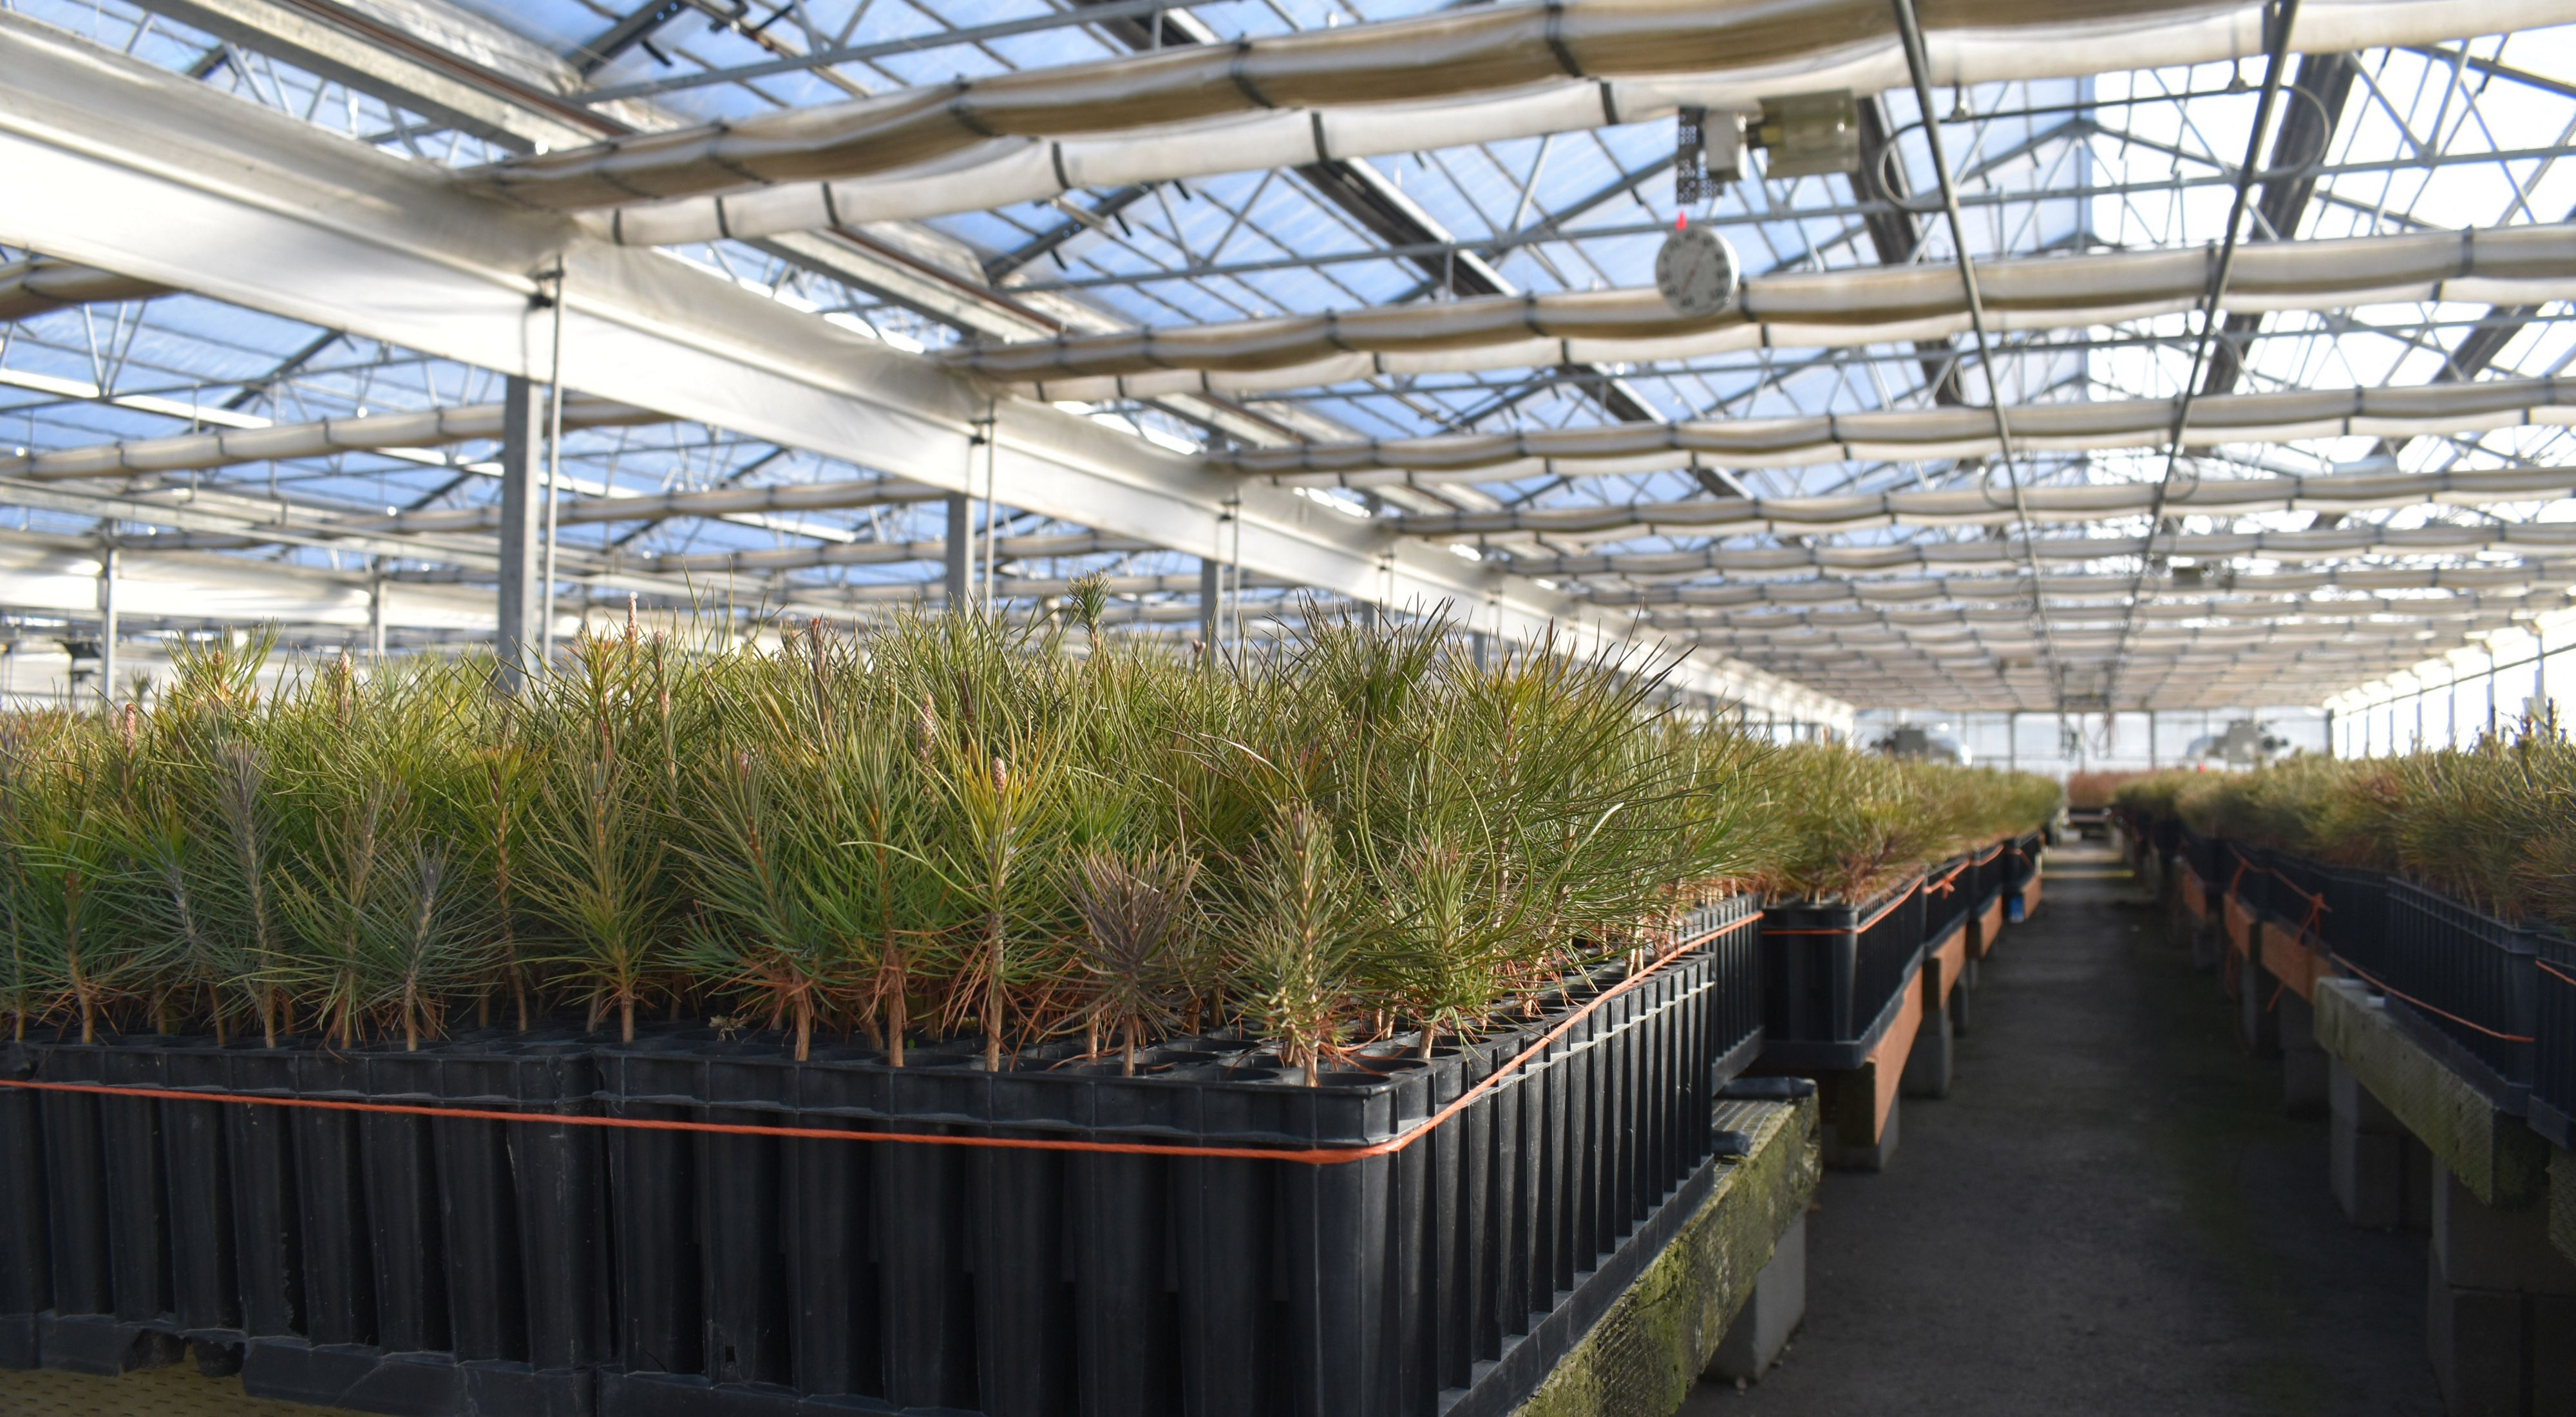 A greenhouse with long rows of evergreen tree seedlings arrayed on tables.